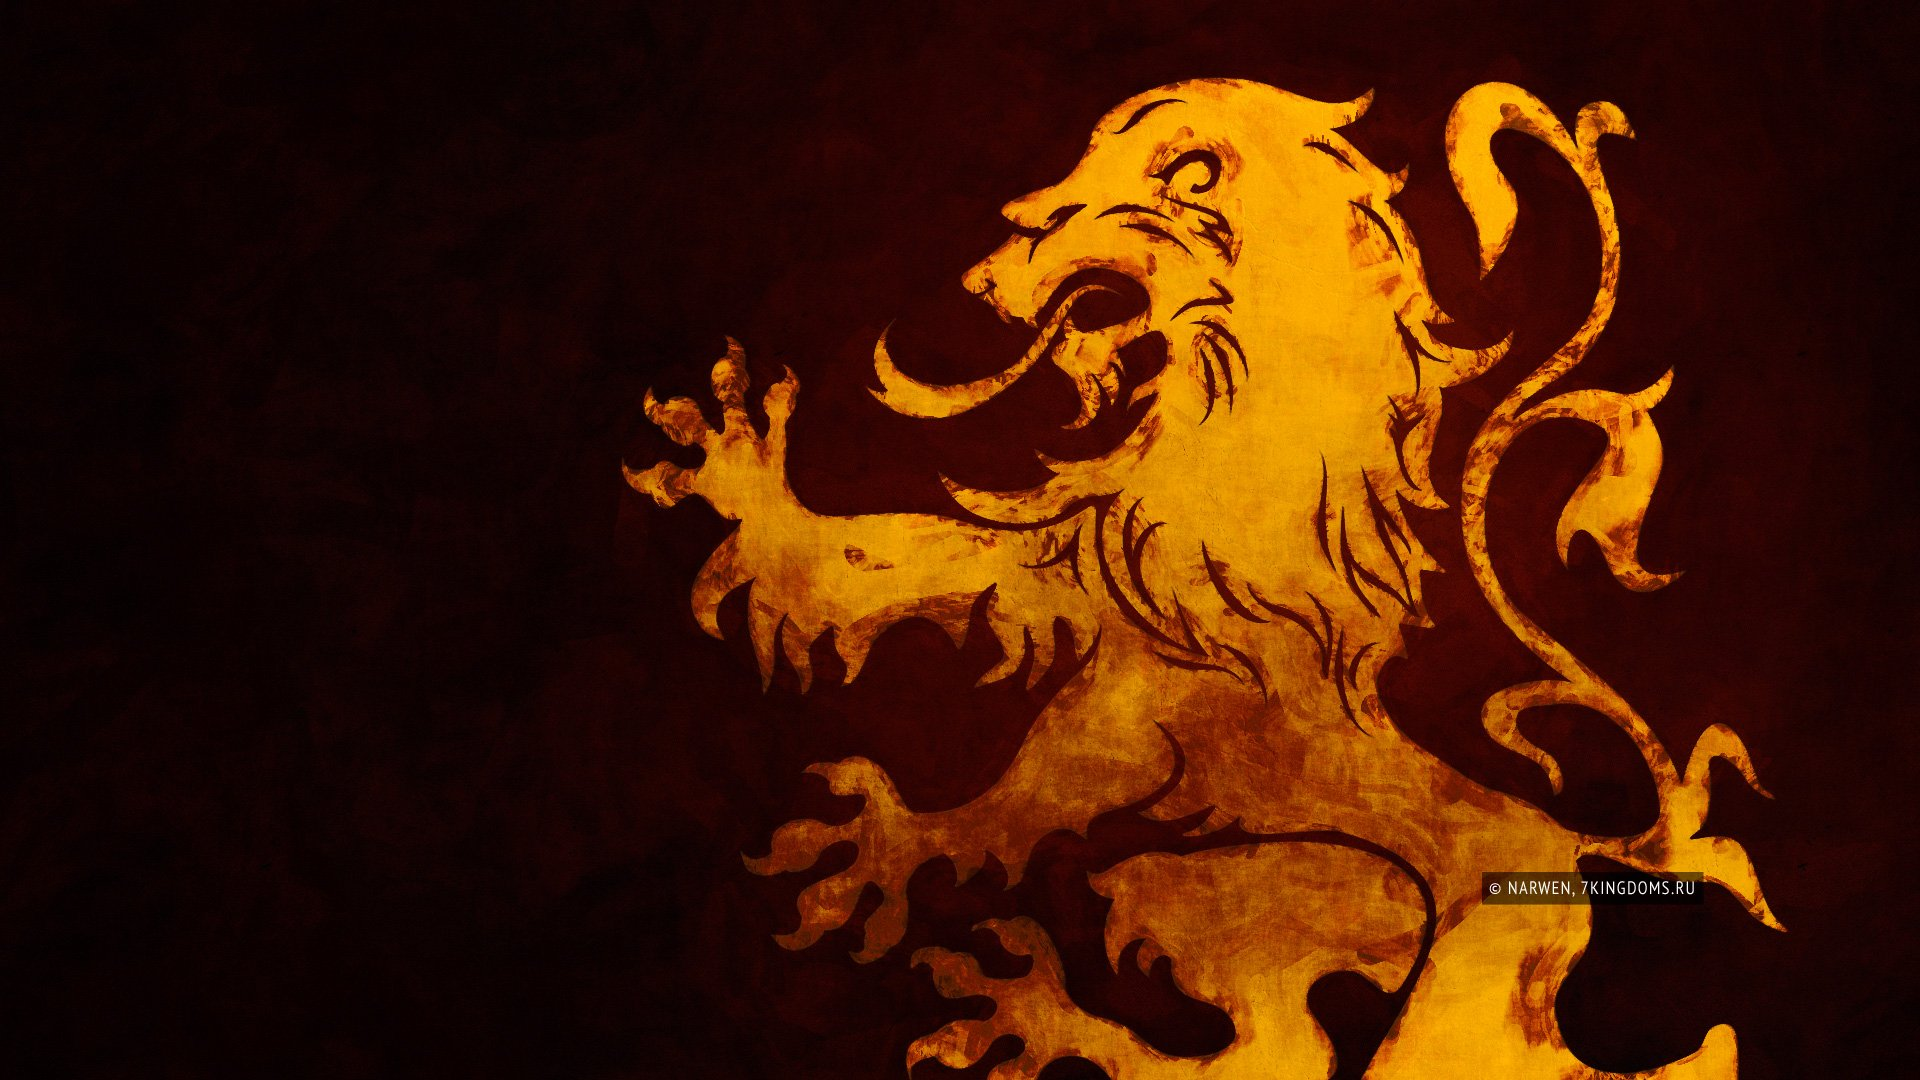 http://7kingdoms.ru/wp-content/uploads/2009/07/wallpaper_lannister_1920.jpg